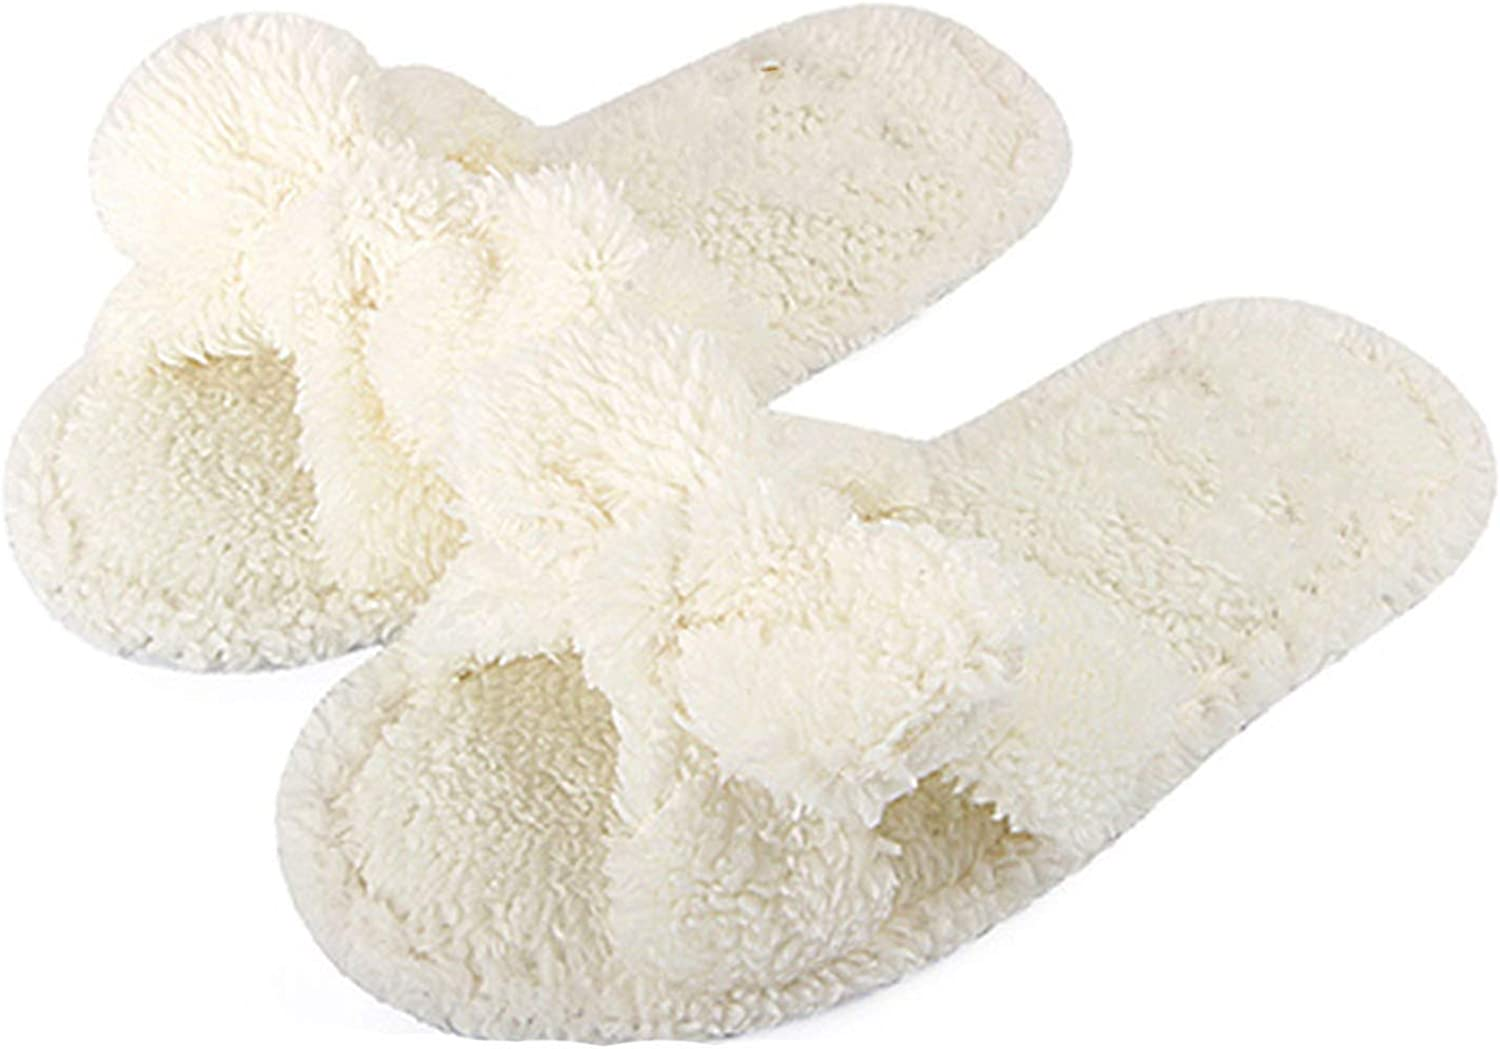 PilotageAuto Winter Fur Slippers shoes Woman Cute Bow Plush Home shoes Indoor Floor Cotton Slippers